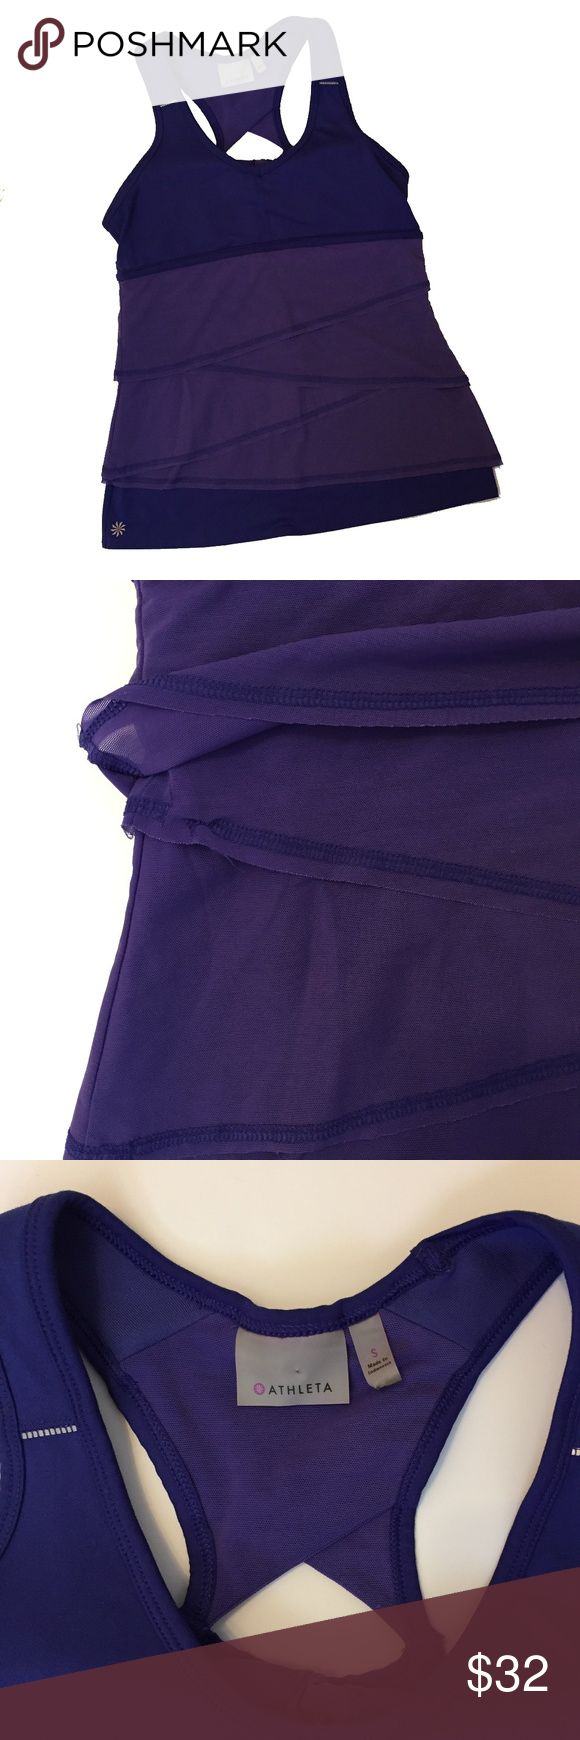 """Athleta work-out yoga tank w/ built-in bra S This Athelta yoga or work-out purple tank top is super cool!  Has asymmetrical layers of a lighter purple mesh fabric as an adorable detail.   There is an area where the threading has come undone.  It is underneath one of the layers, so it isn't noticeable.  There also appears to be one area where the stitching got caught while being sewn!  Again, not noticeable, but I wanted to point it out.  Bust- 15"""" Length- 24"""" Measurements are taken flat and…"""